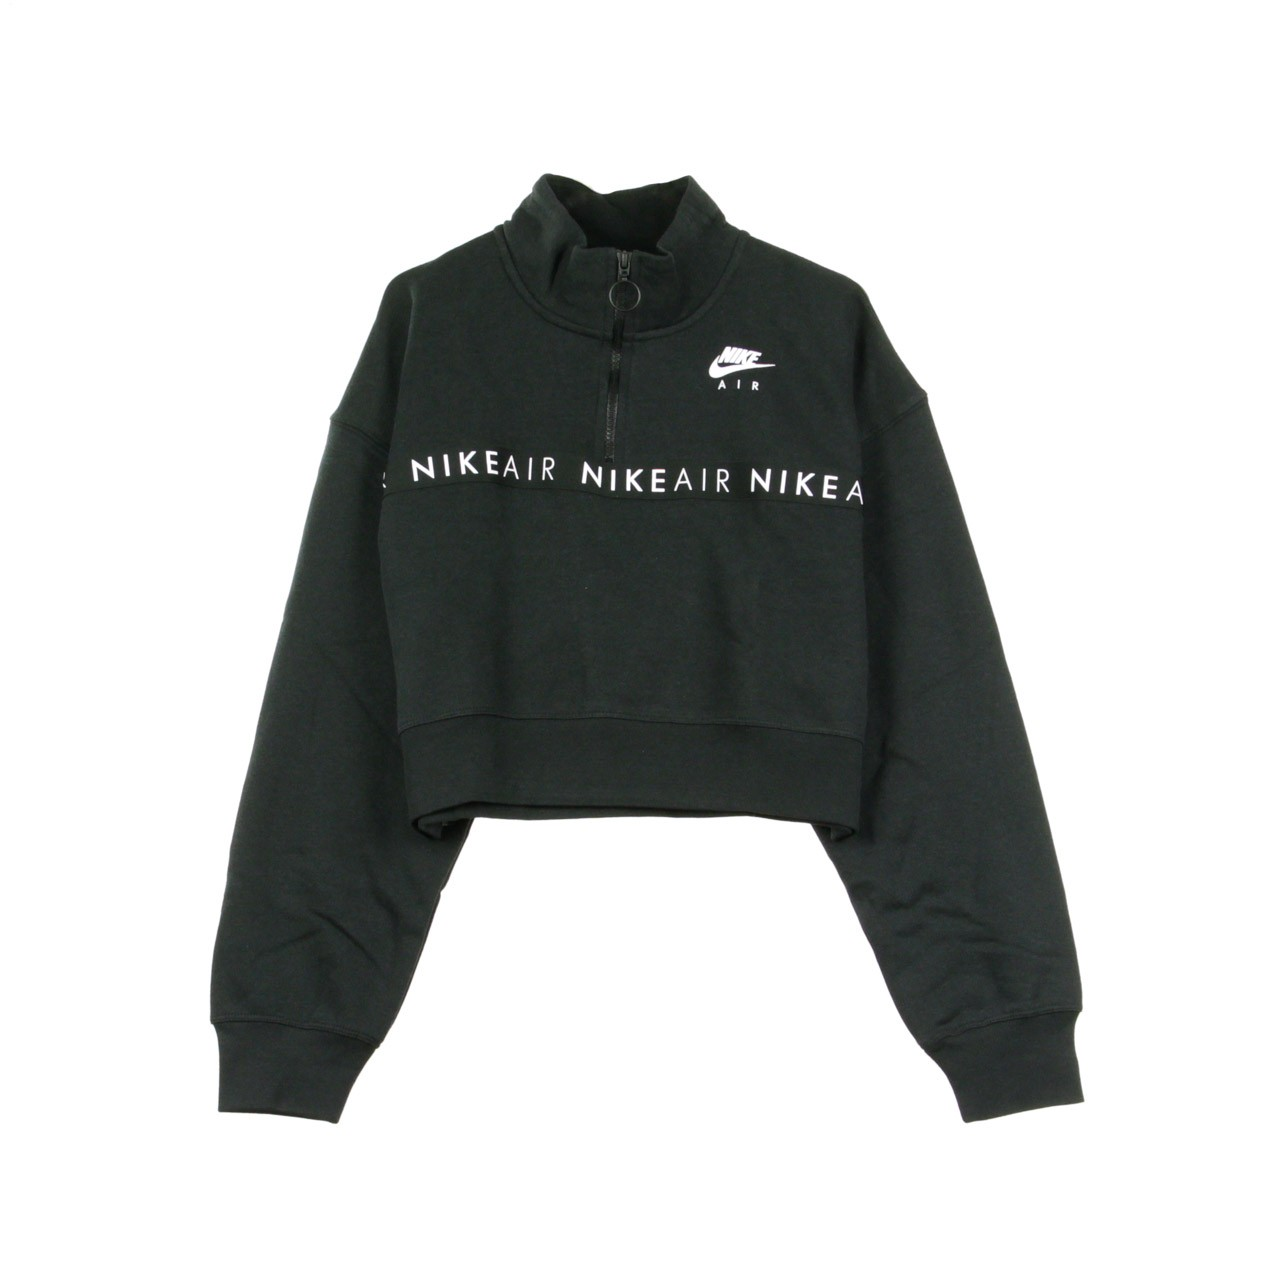 Black Maglione Lupetto Zip Up Sweater